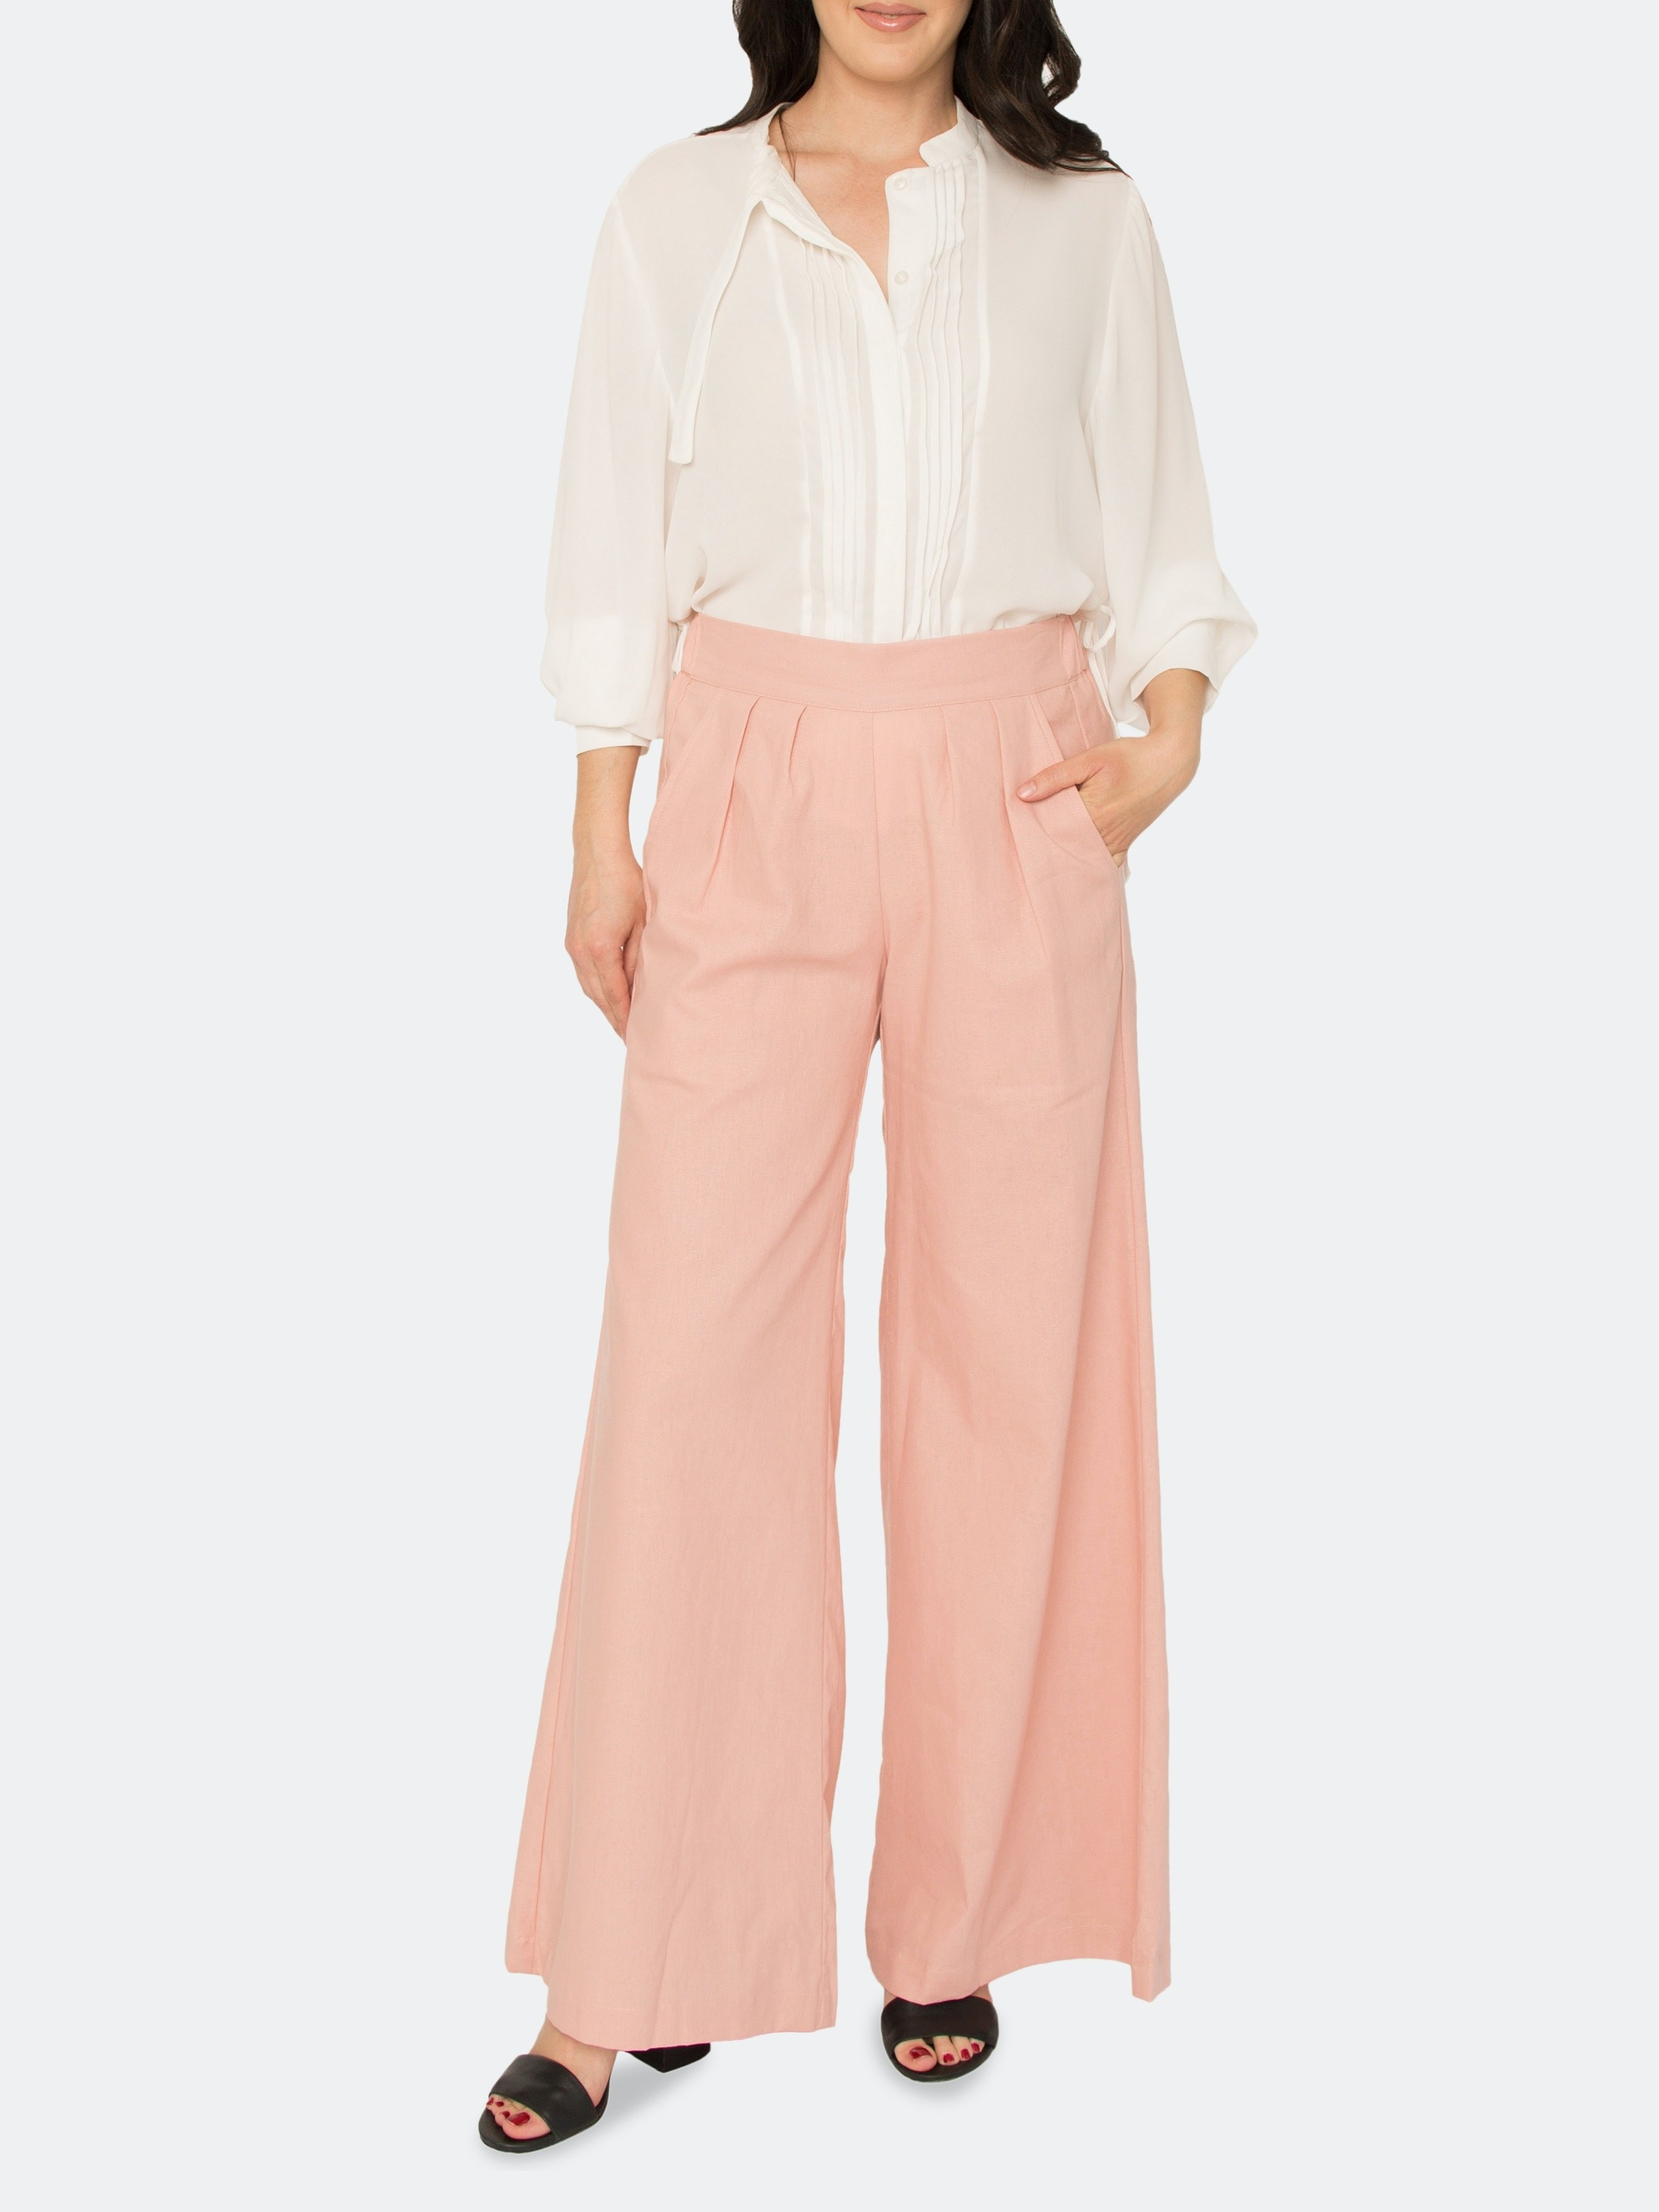 model wearing the pants in pink